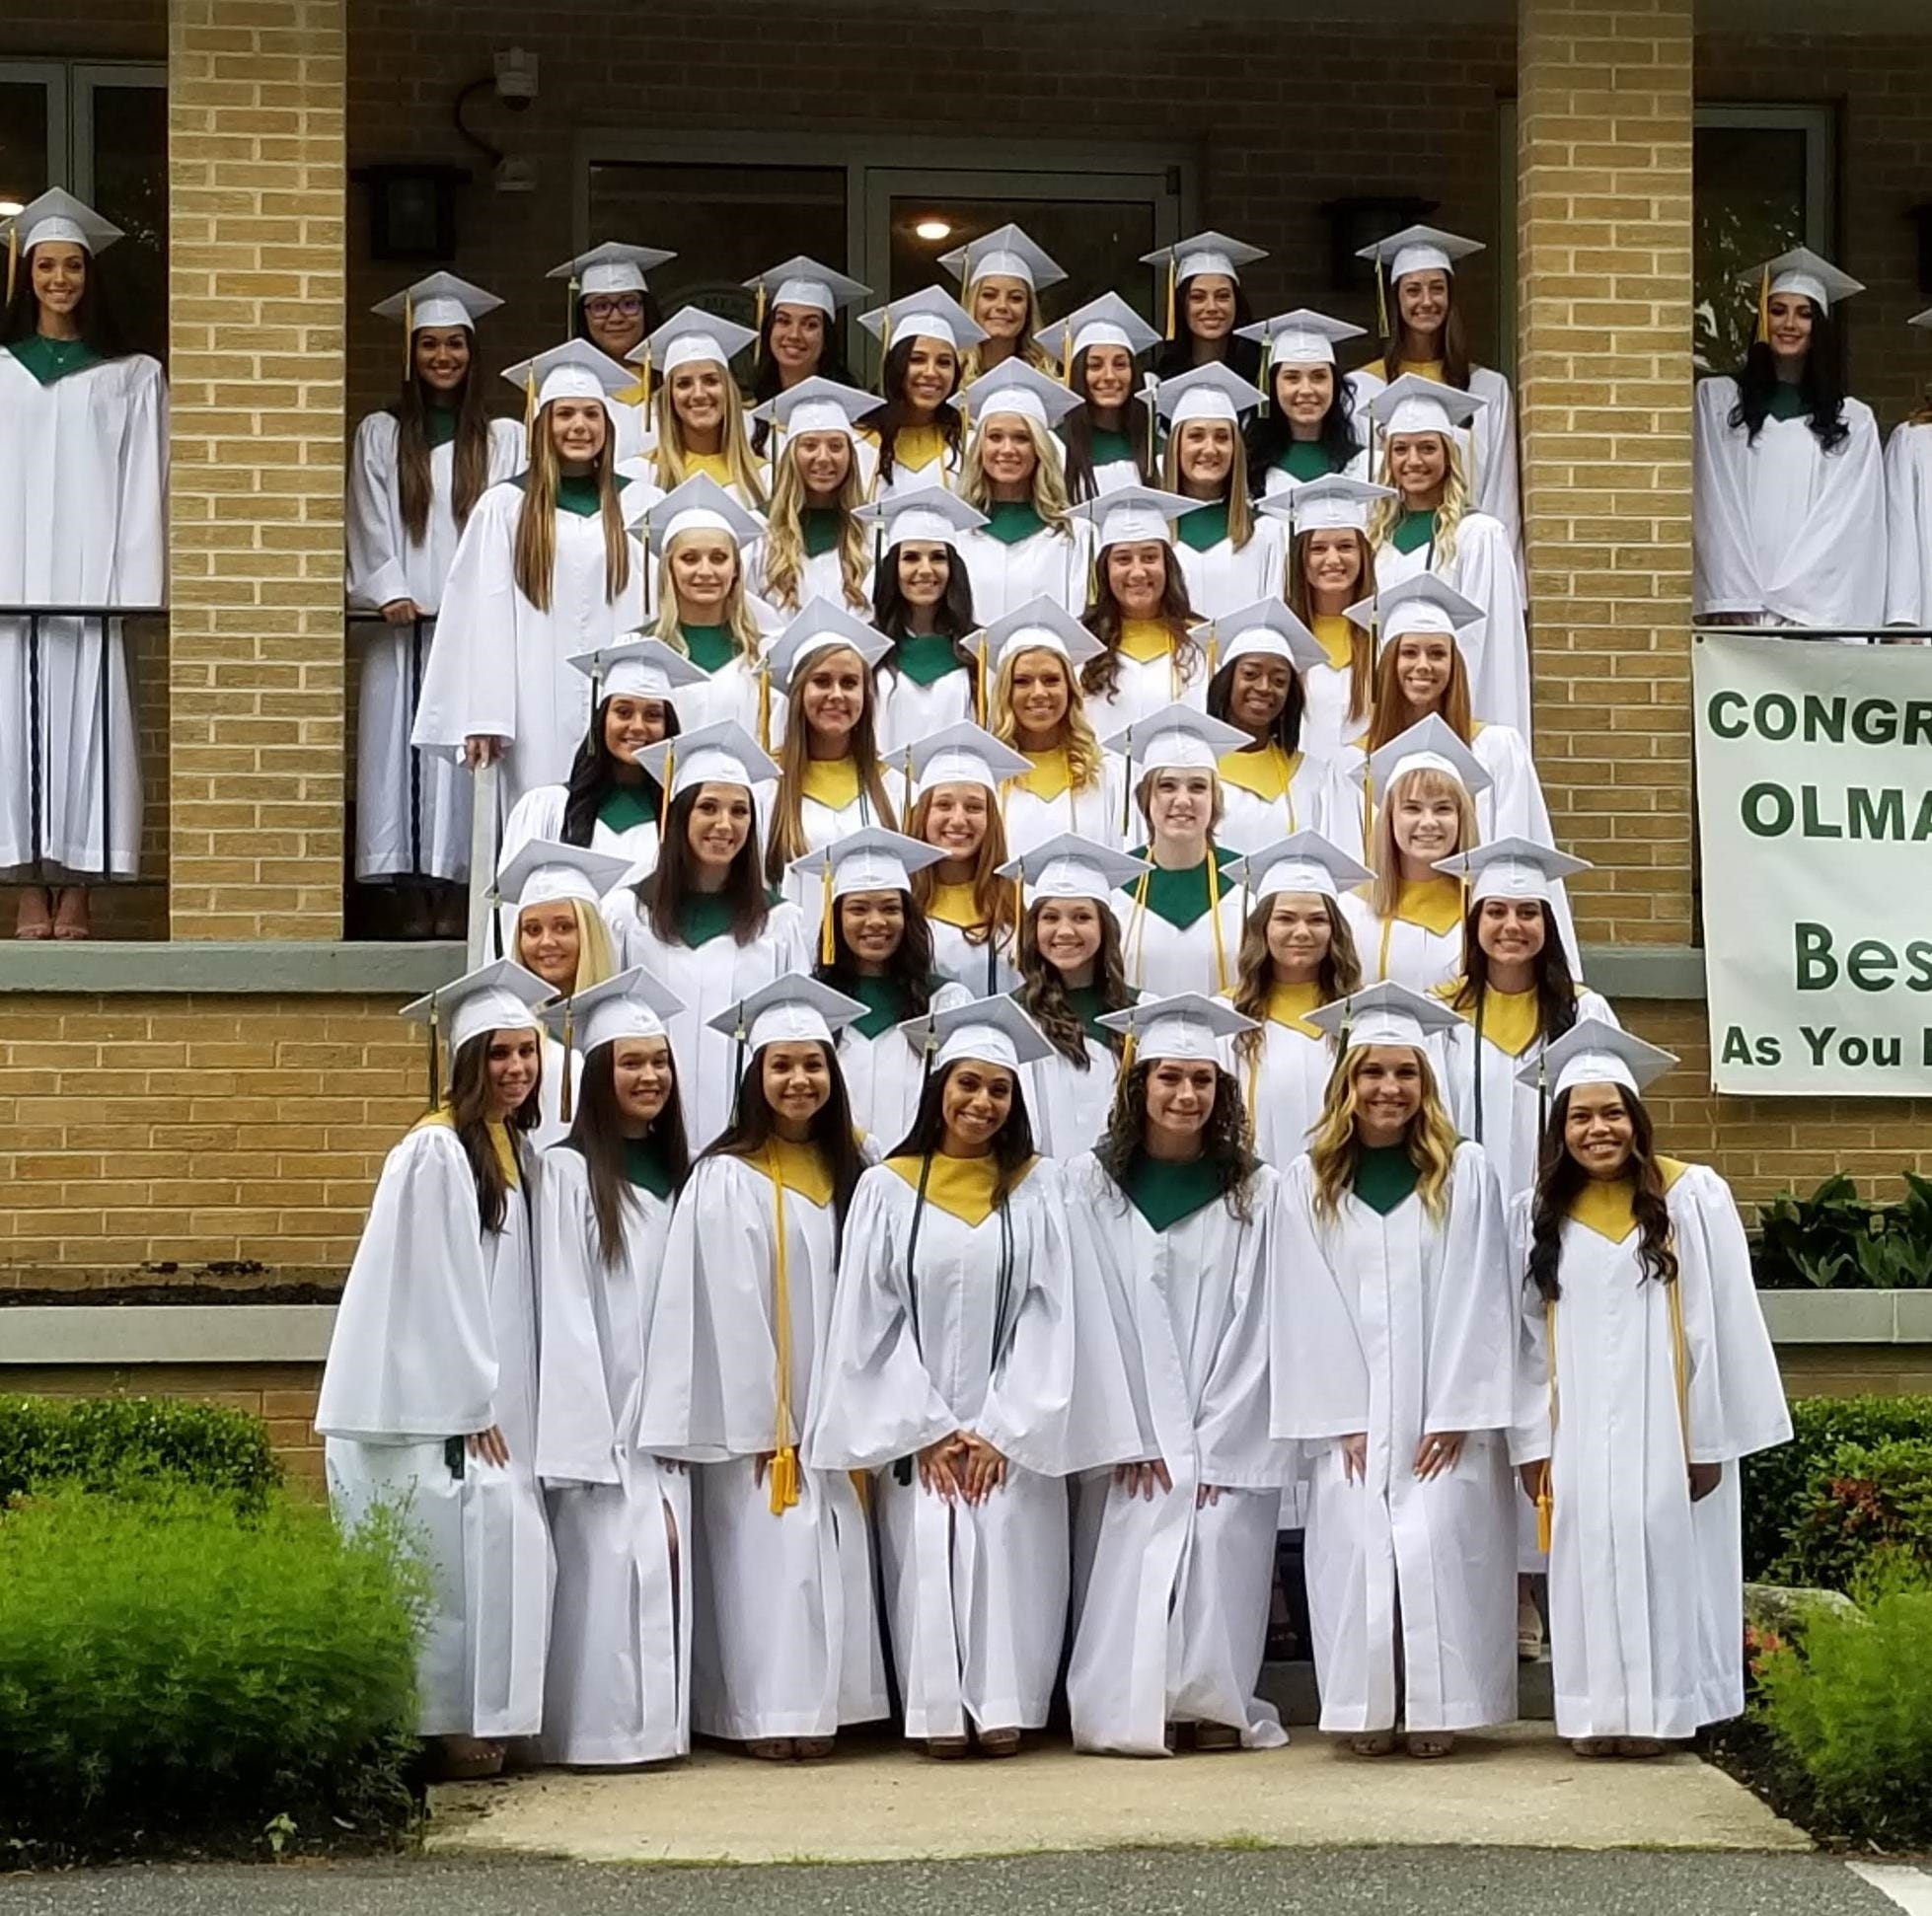 Our Lady of Mercy Academy's Class of 2019 graduates